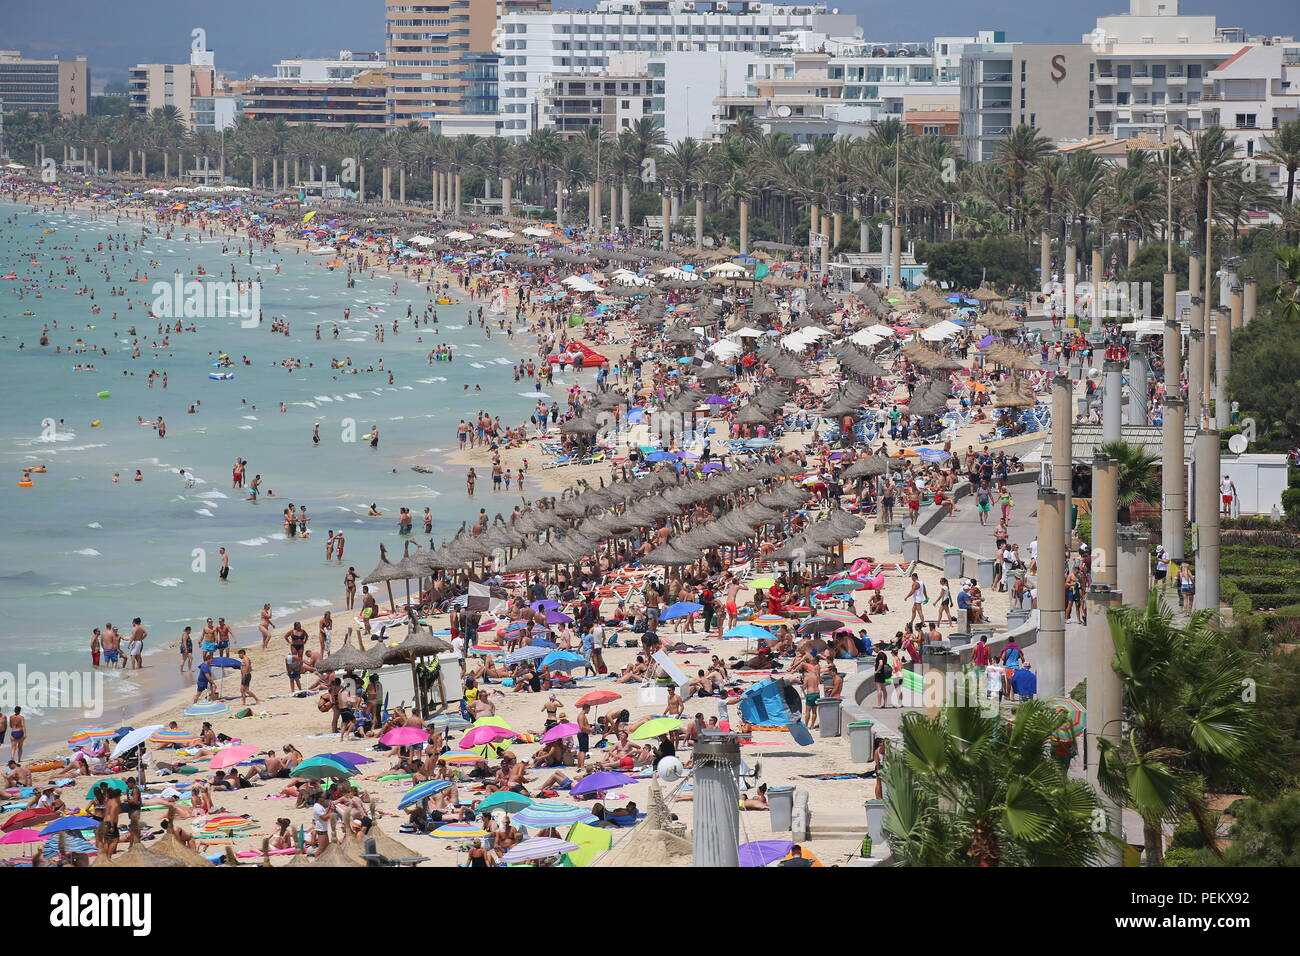 General view over the touristic beach of El Arenal in the Spanish island of Mallorca. Stock Photo